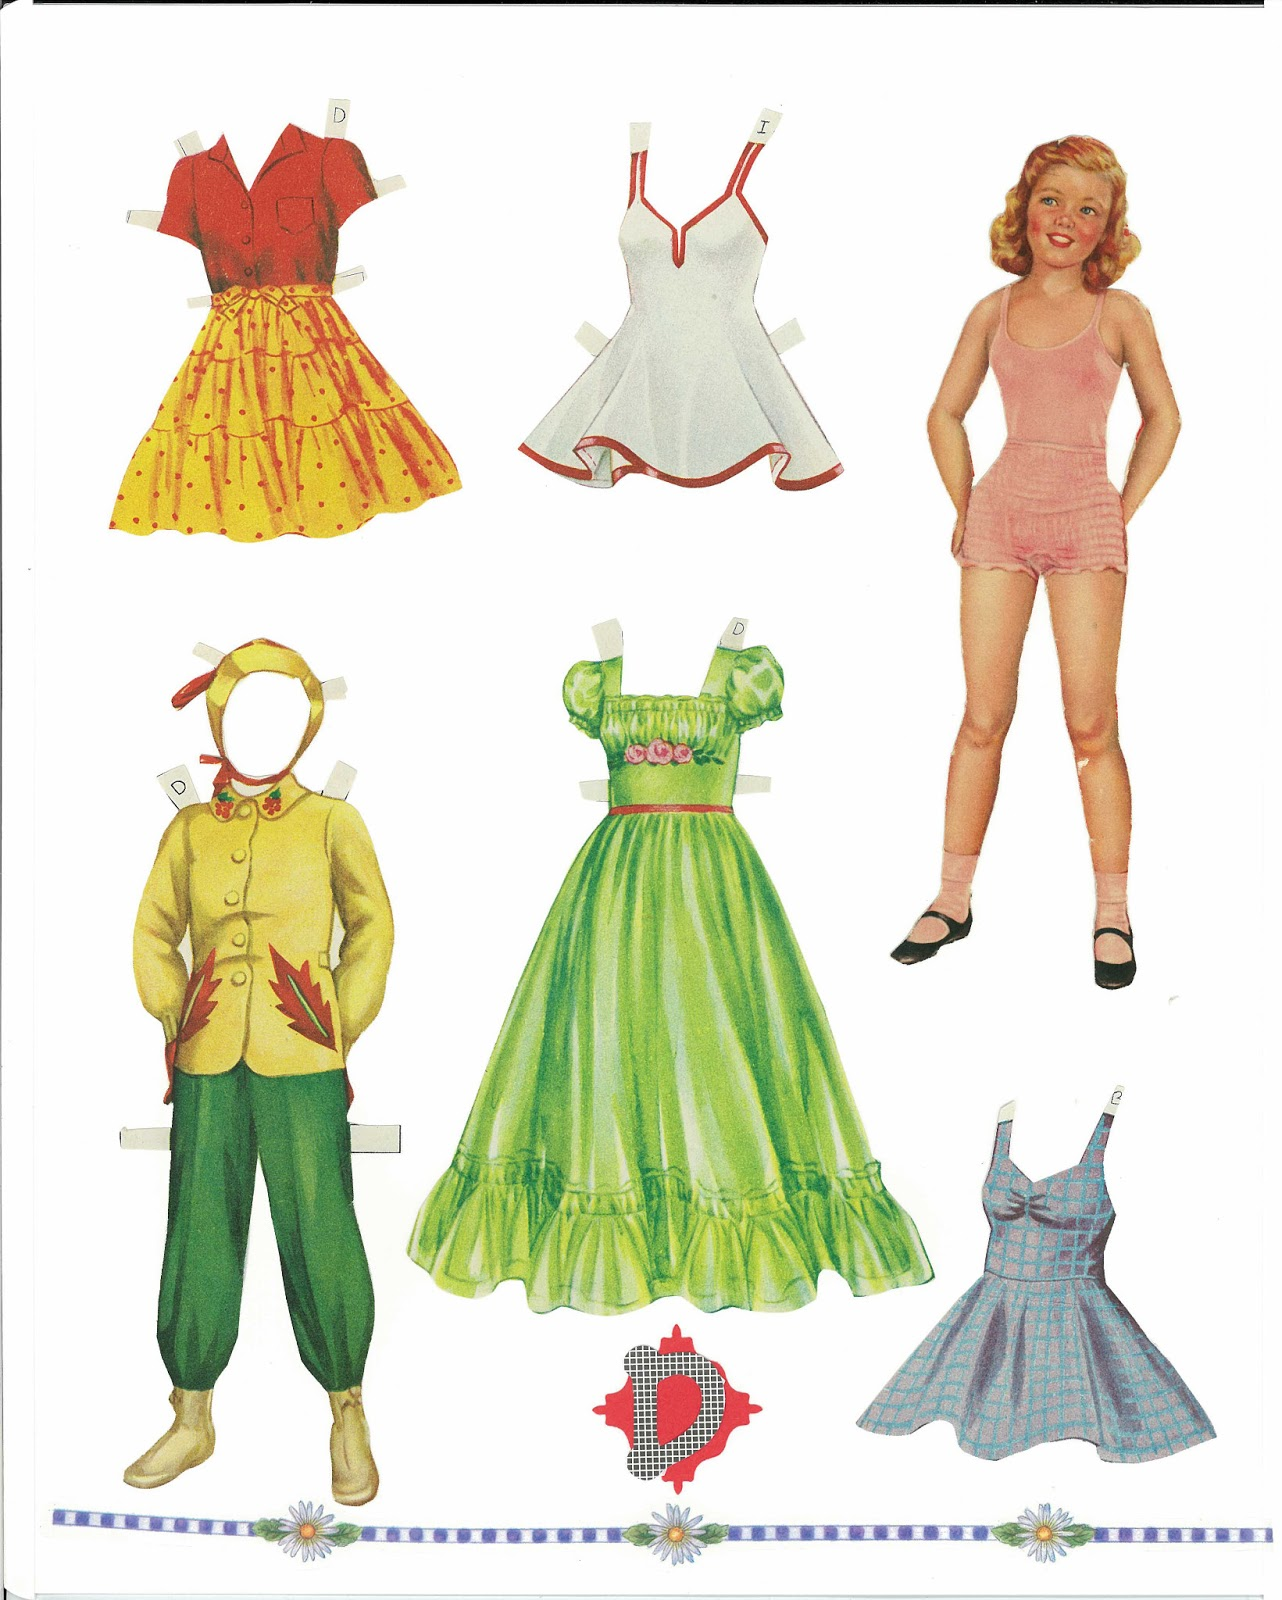 Miss Missy Paper Dolls: Sweetheart paper dolls cut